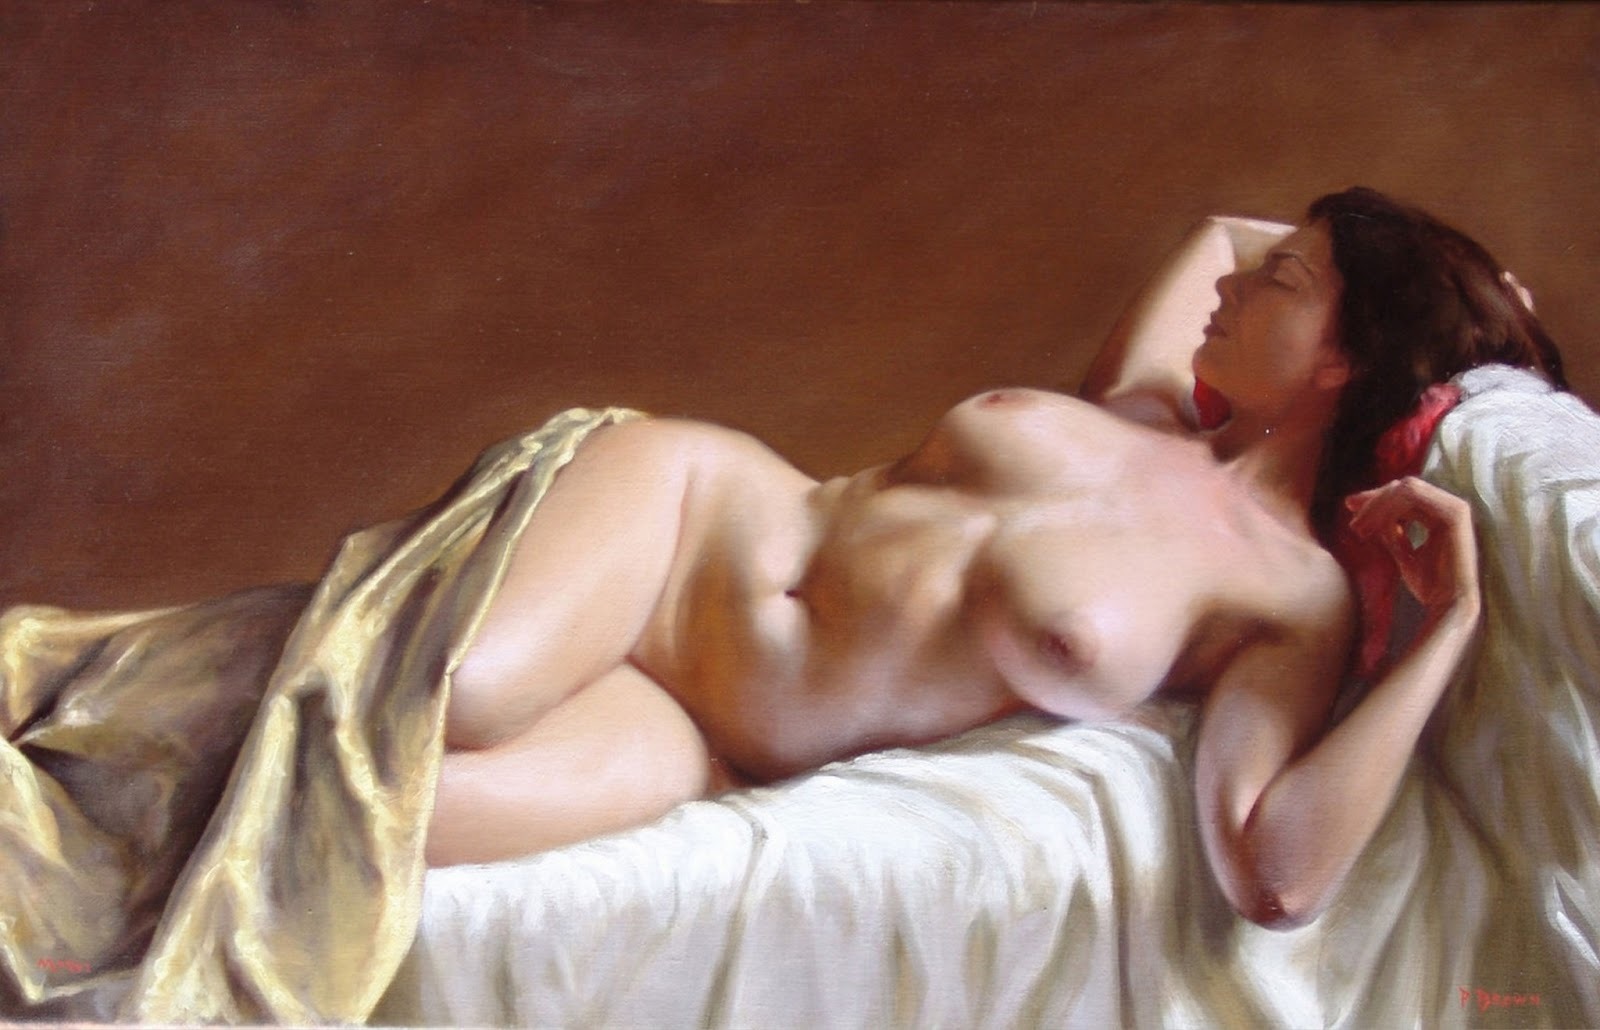 Los Desnudos Art Sticos Femeninos Paulbrown Carolina Del Norte